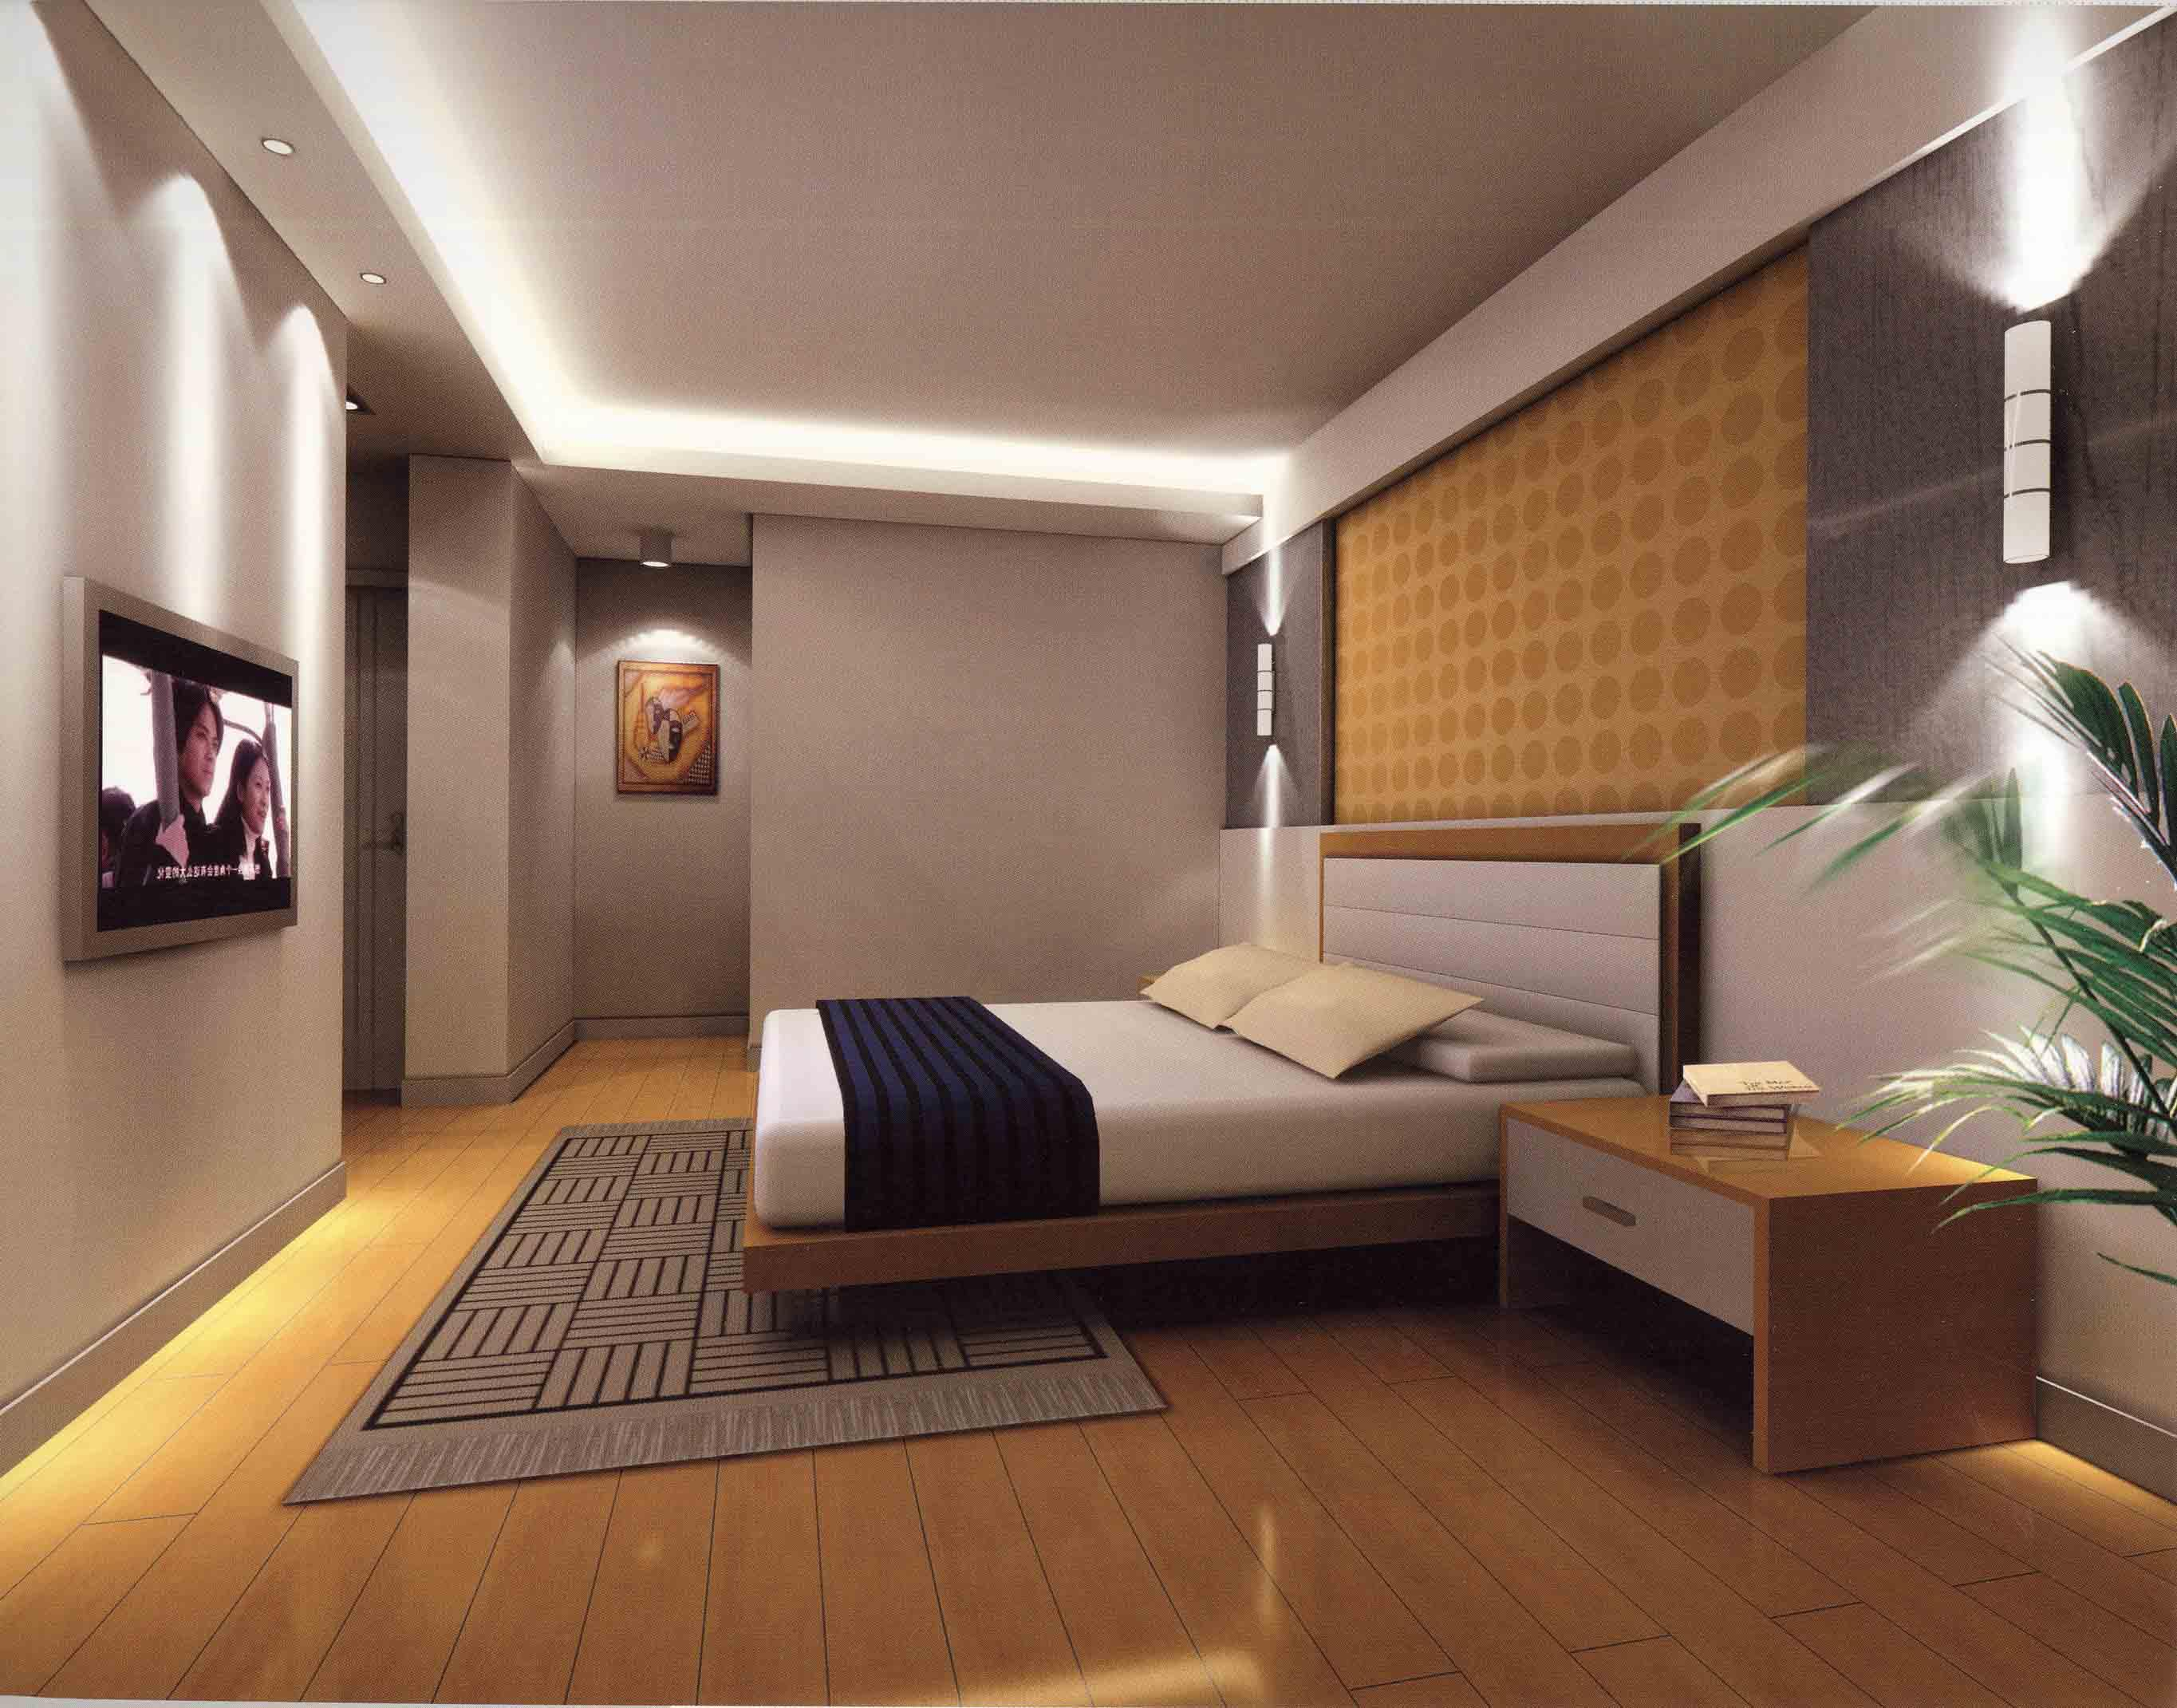 25 cool bedroom designs collection for Bedroom designs nz